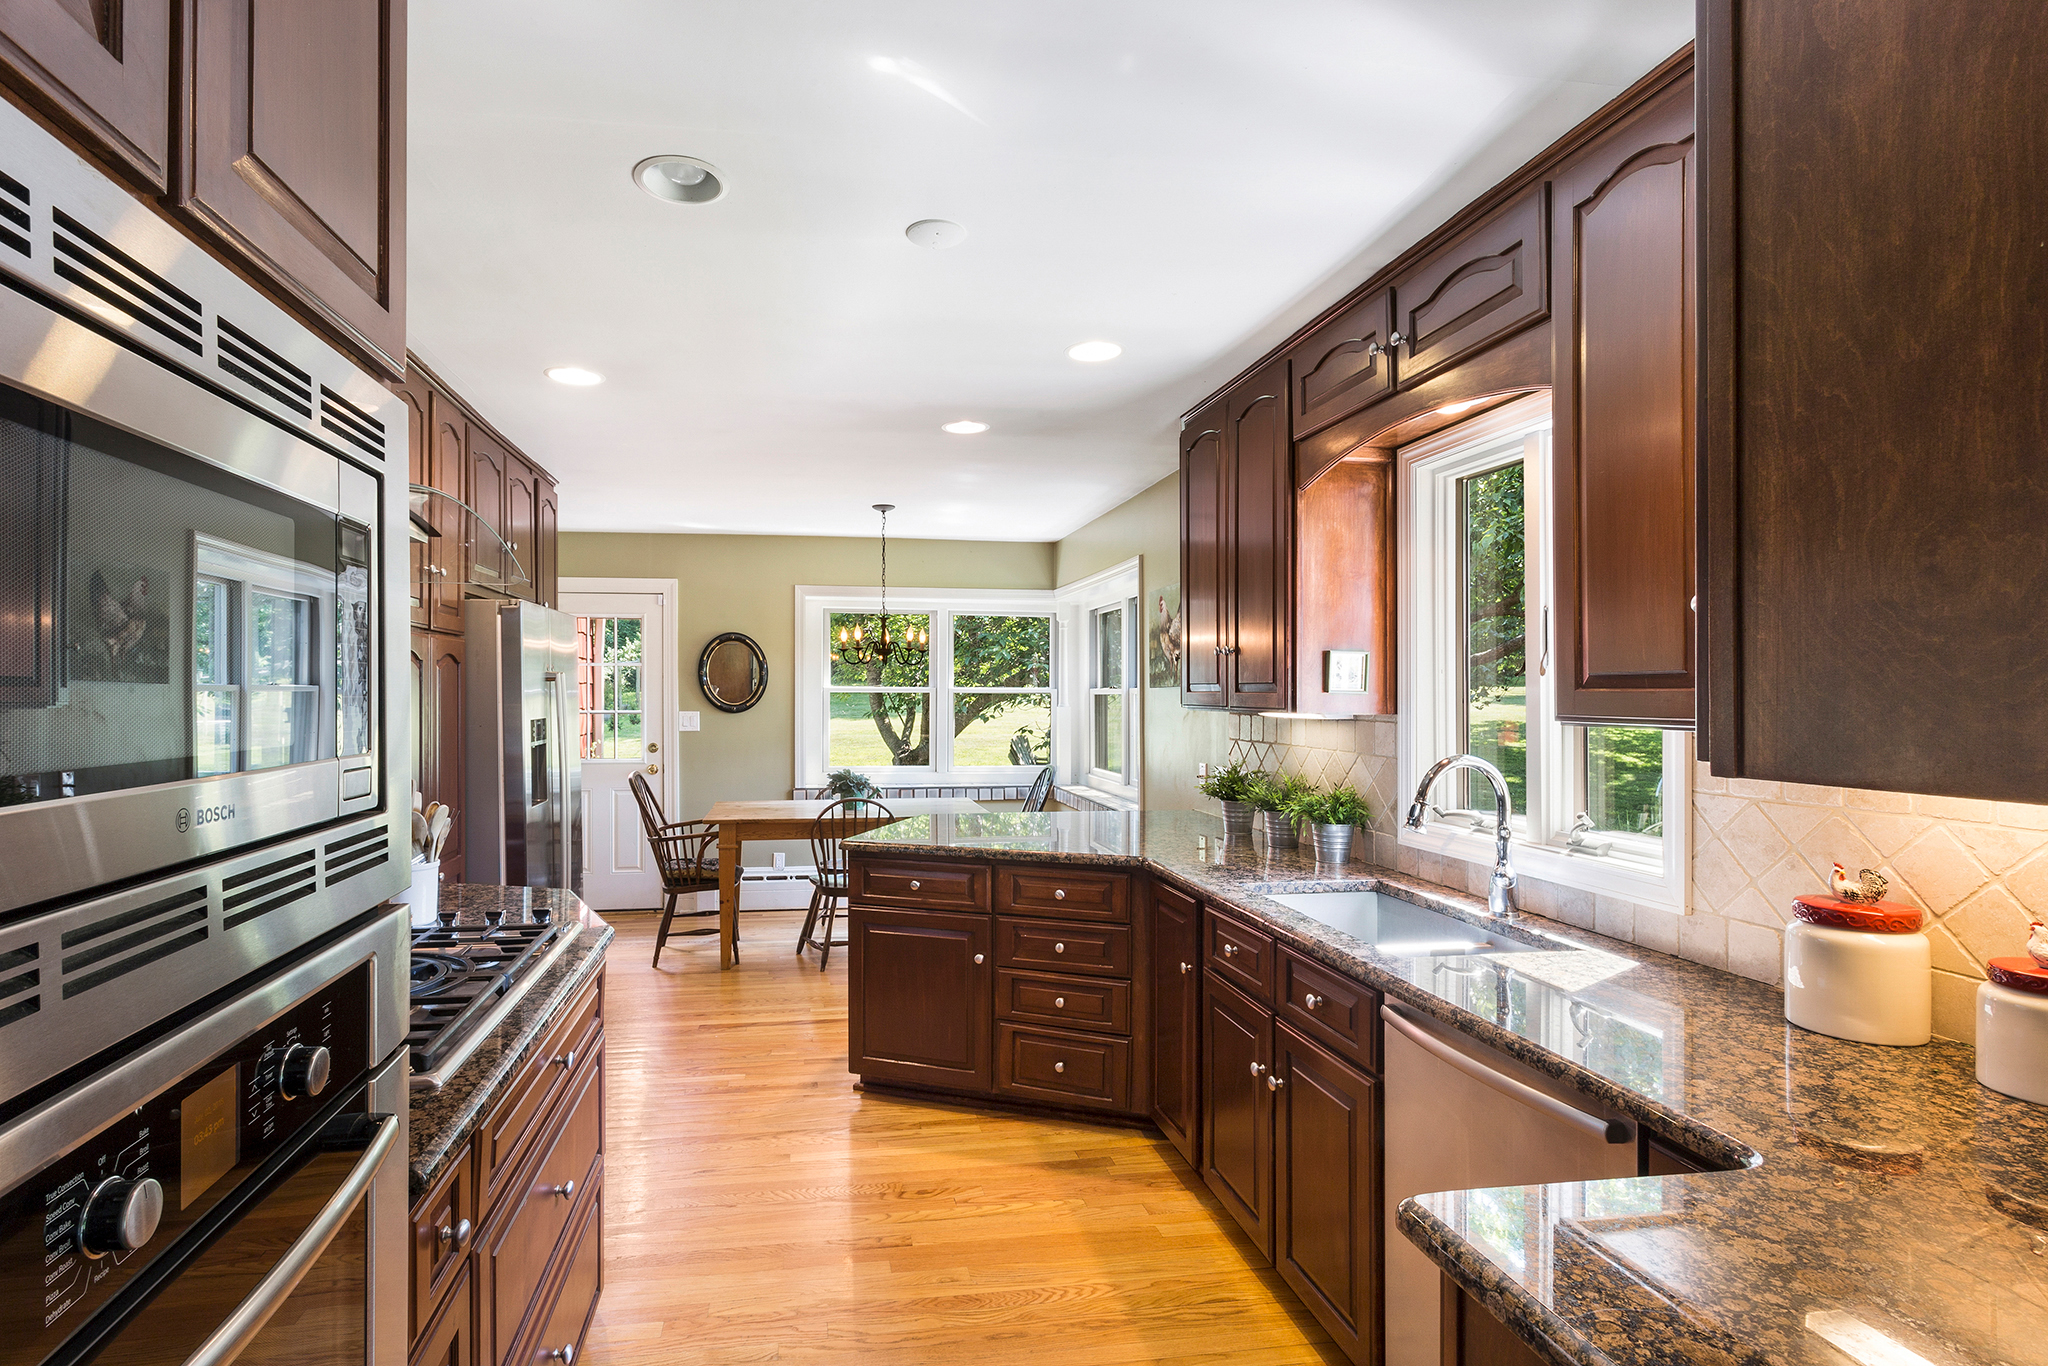 03 7 Scarlet Oak Road Tewksury Township — Kitchen